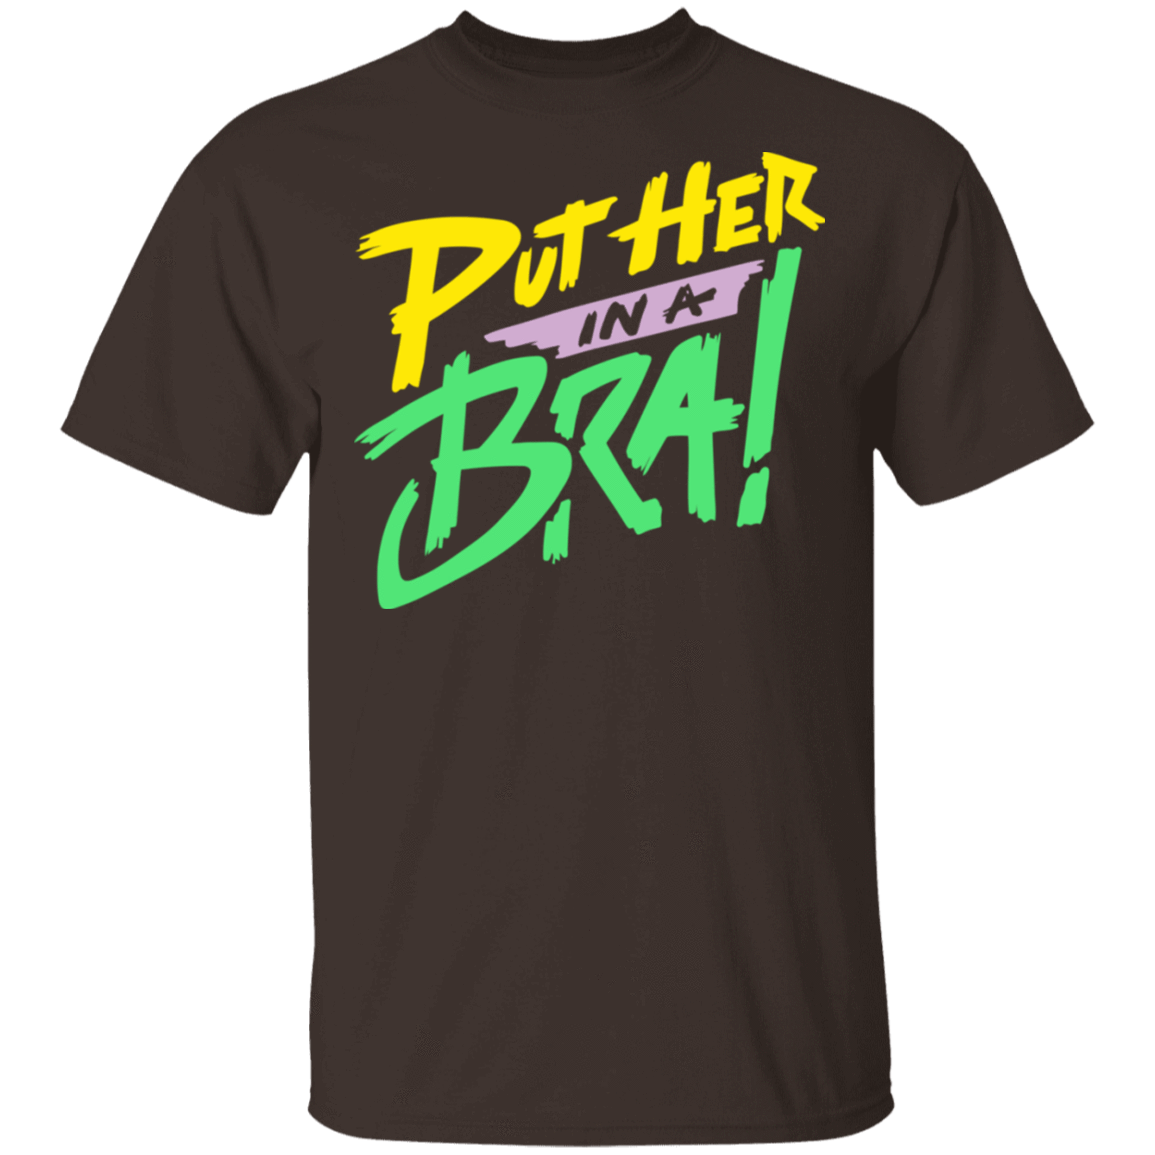 Put Her In A Bra! T-Shirts, Hoodies, Tank 22-2283-79540867-12087 - Tee Ript